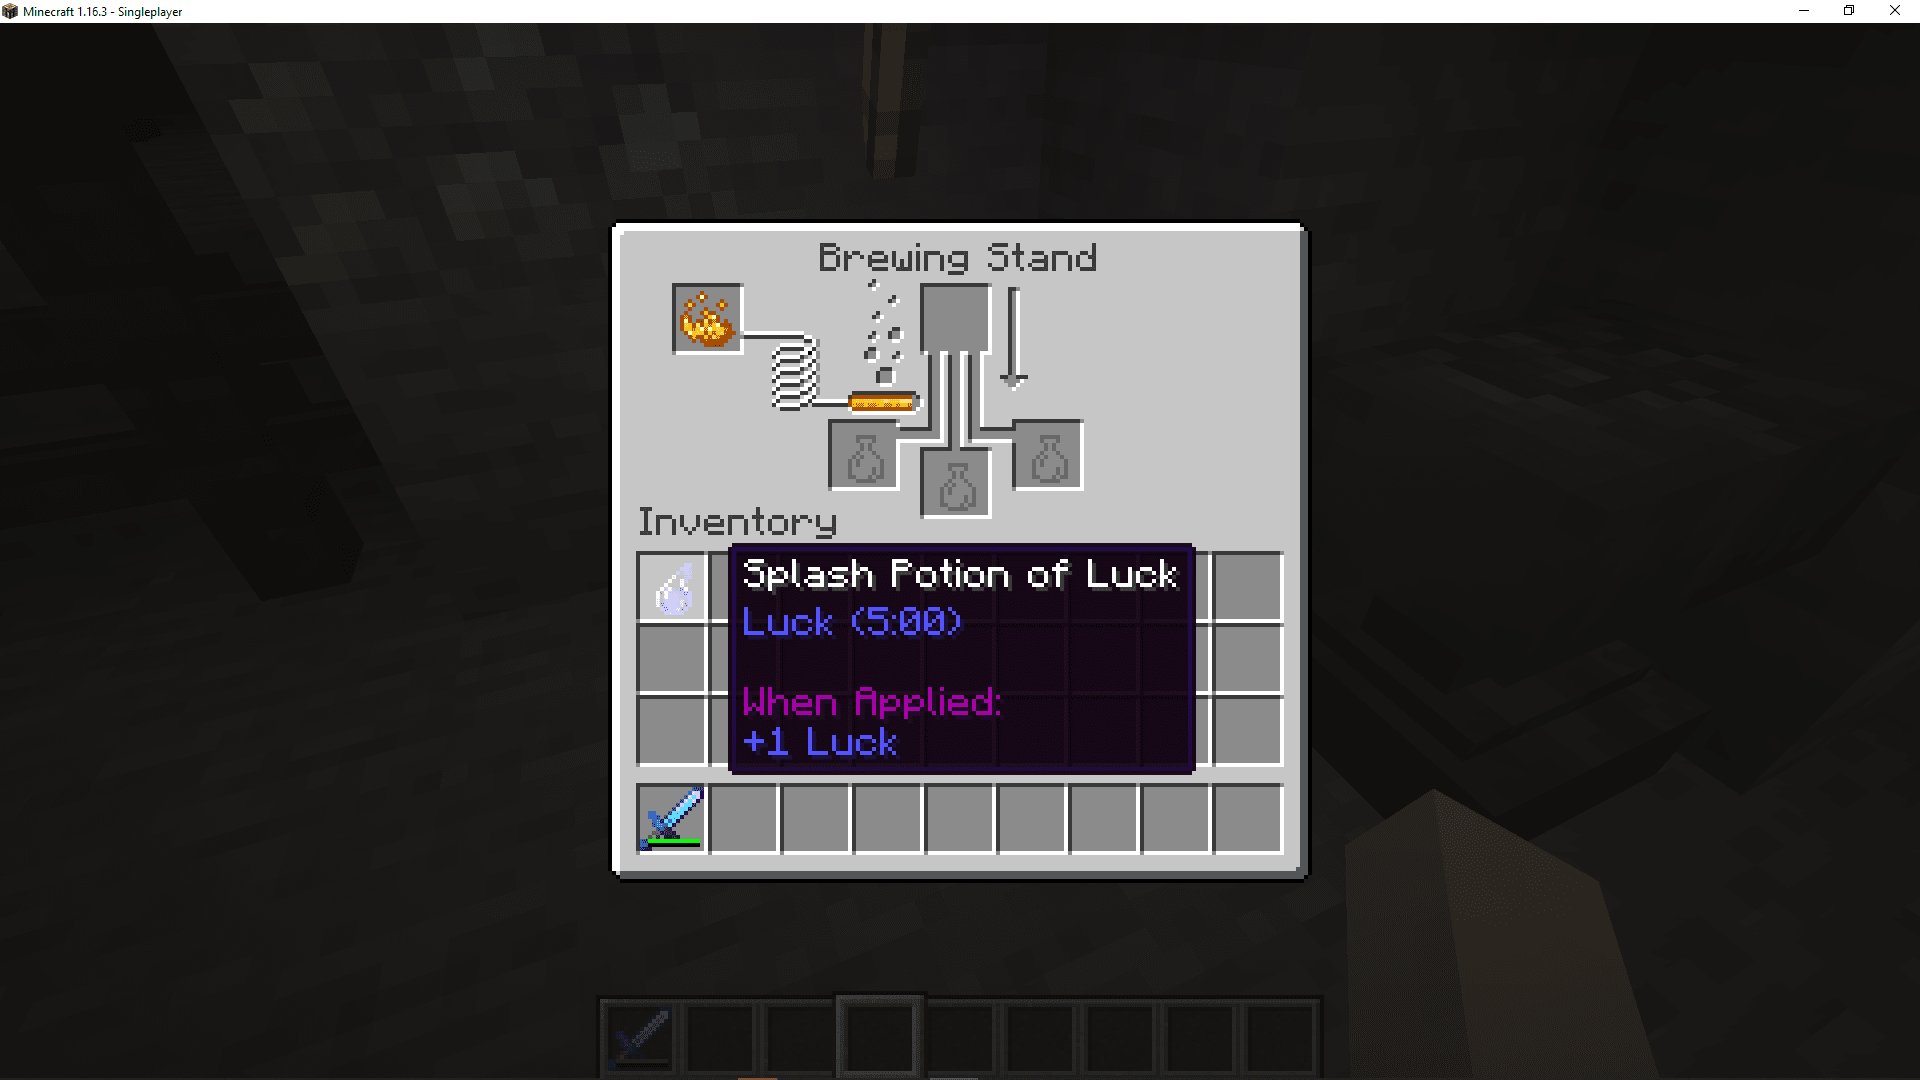 A screenshot of a splash potion of luck in Minecraft.